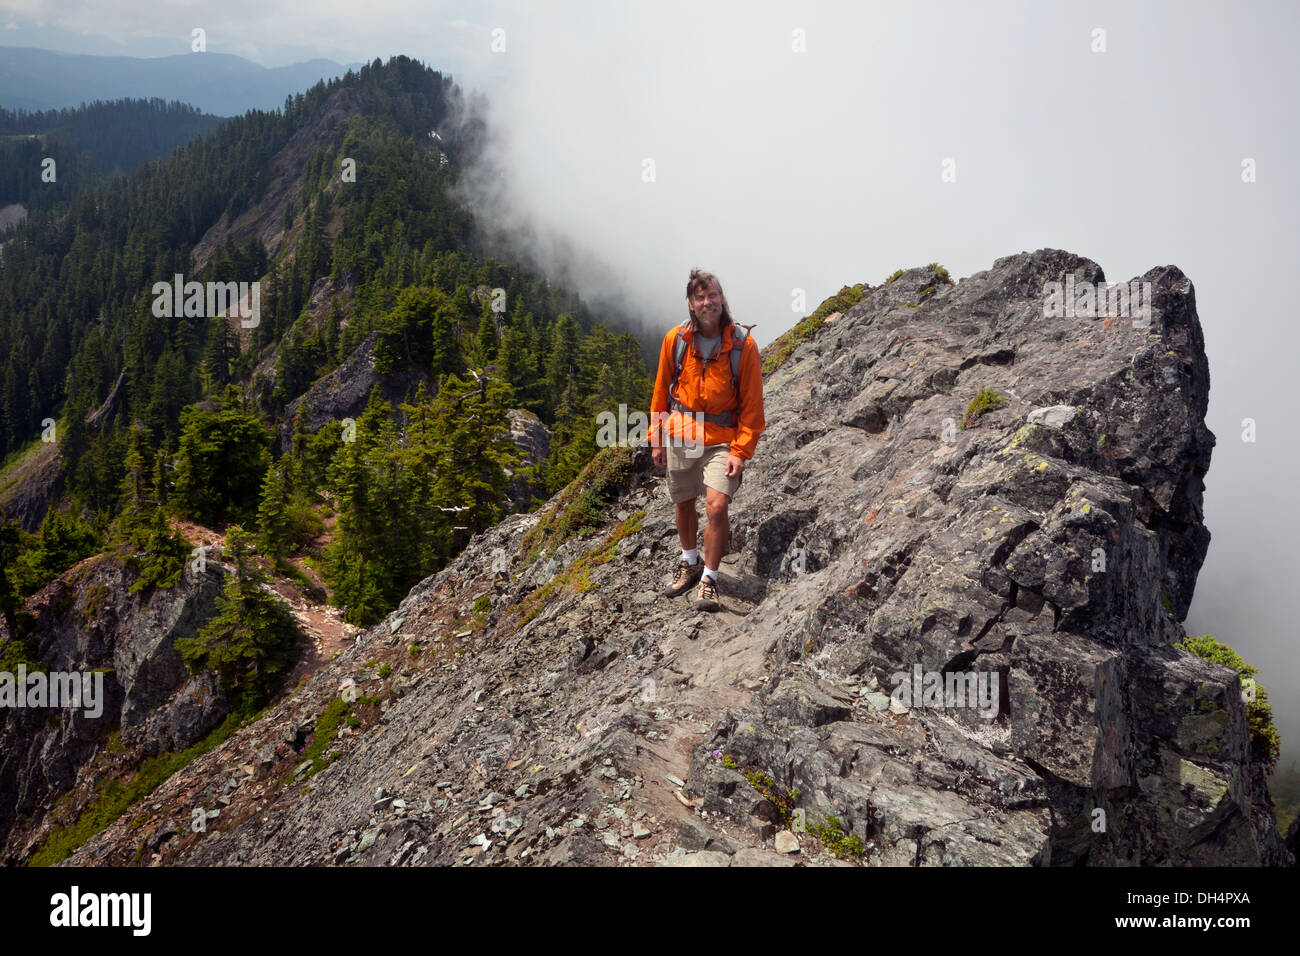 WASHINGTON - Hiker approaching along the edge of the fog towards summit of McClellan Butte on the I-90 Corridor. - Stock Image